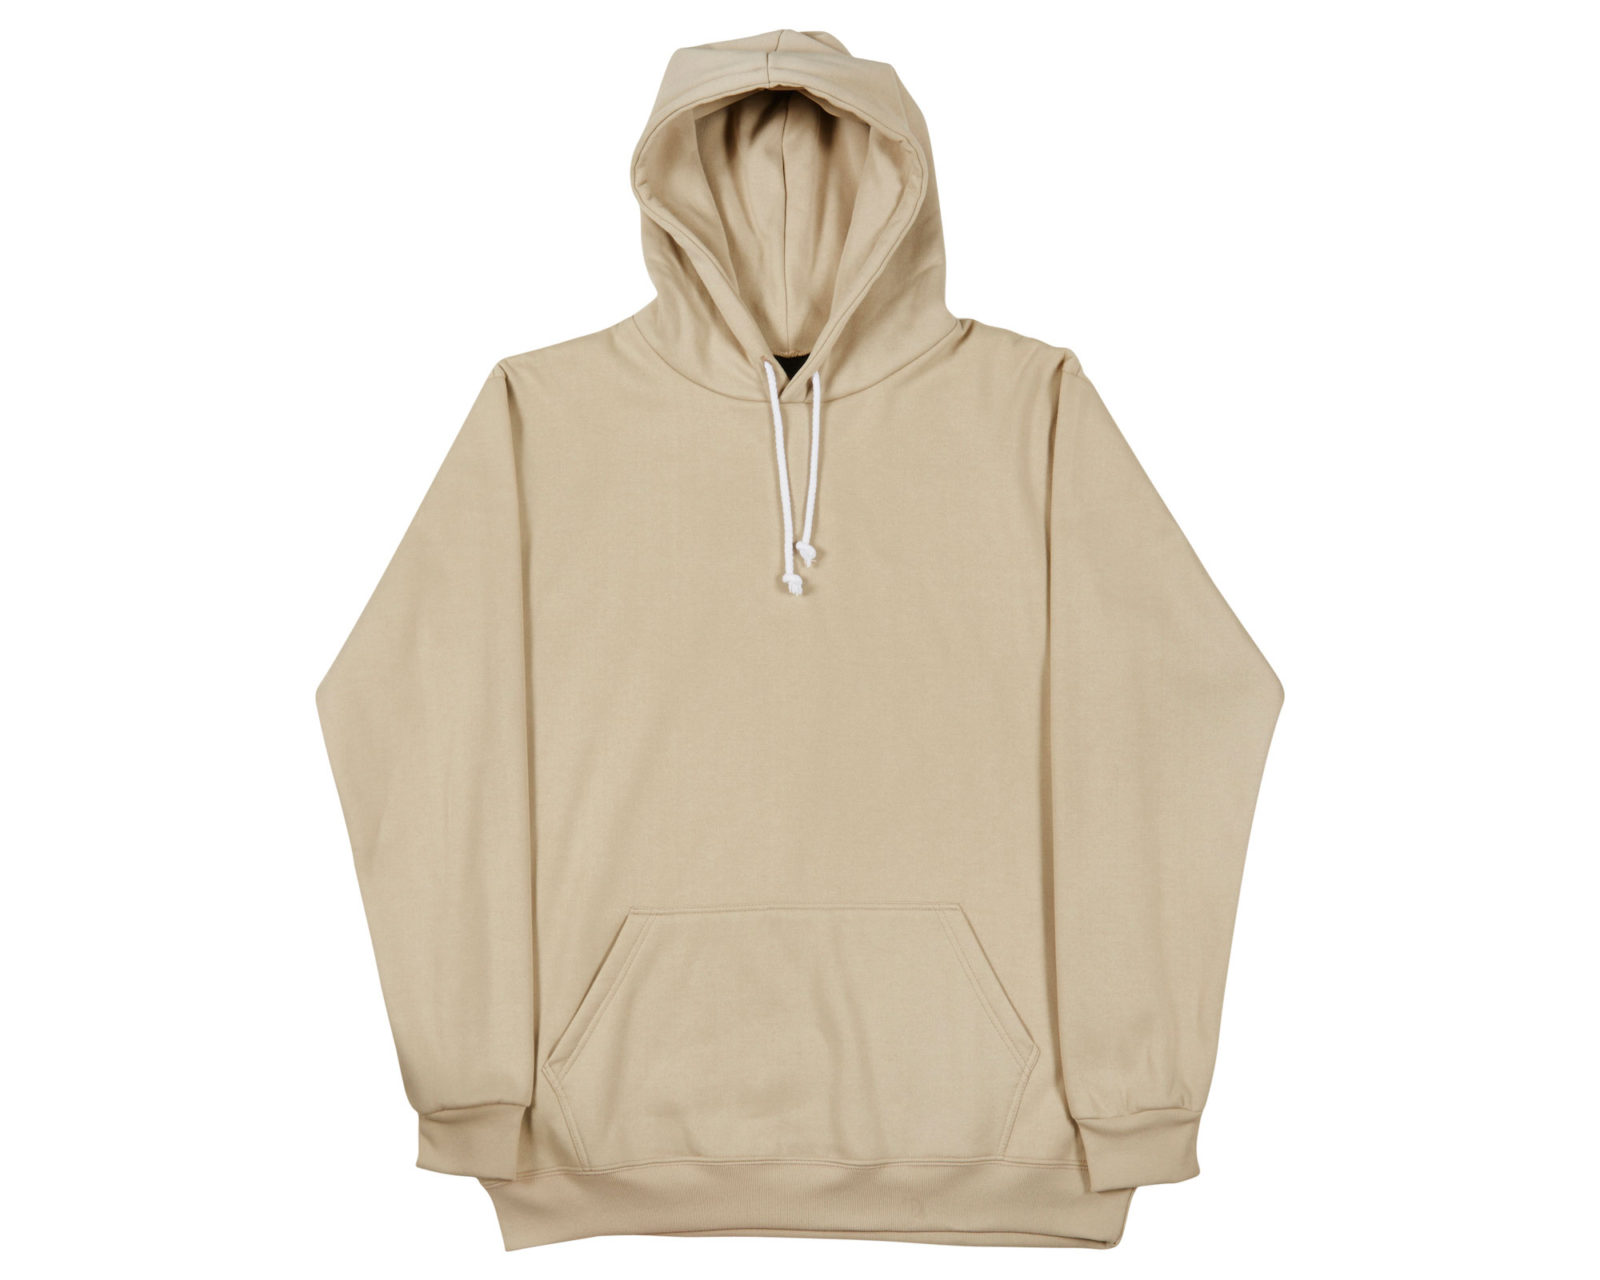 Qualitops Mens Tall Hoodie Polycotton Australian made clothing